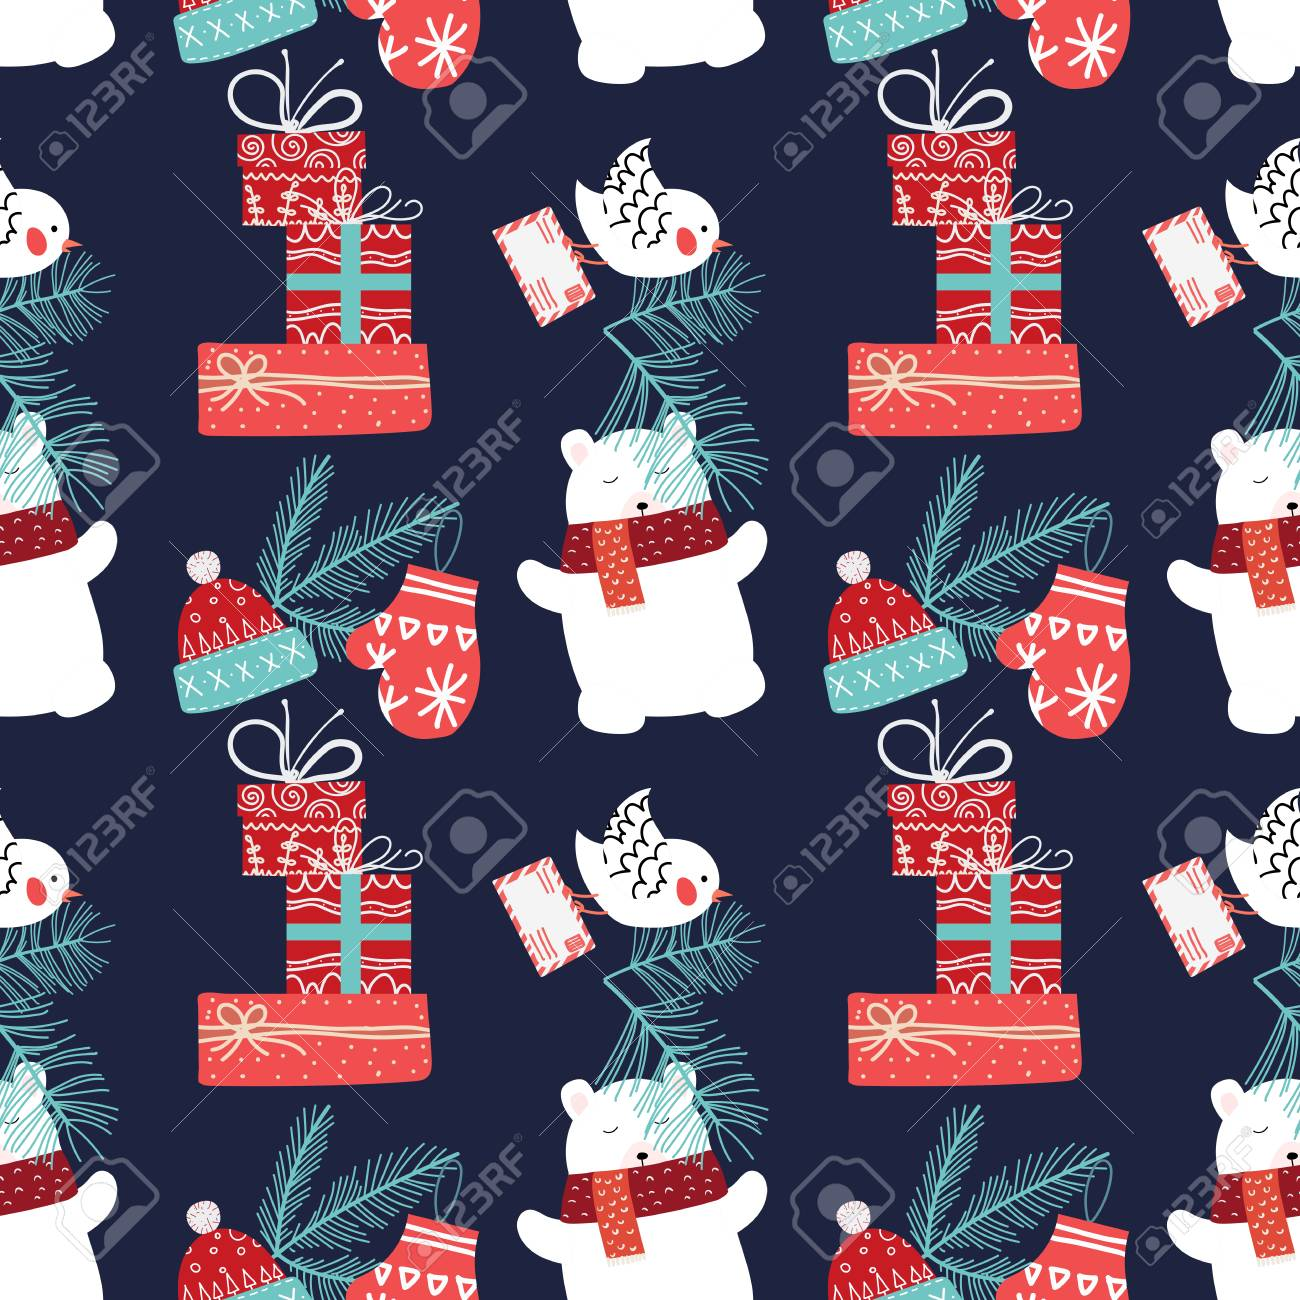 Cute Christmas and New Year seamless pattern with bear and gifts - 115907045